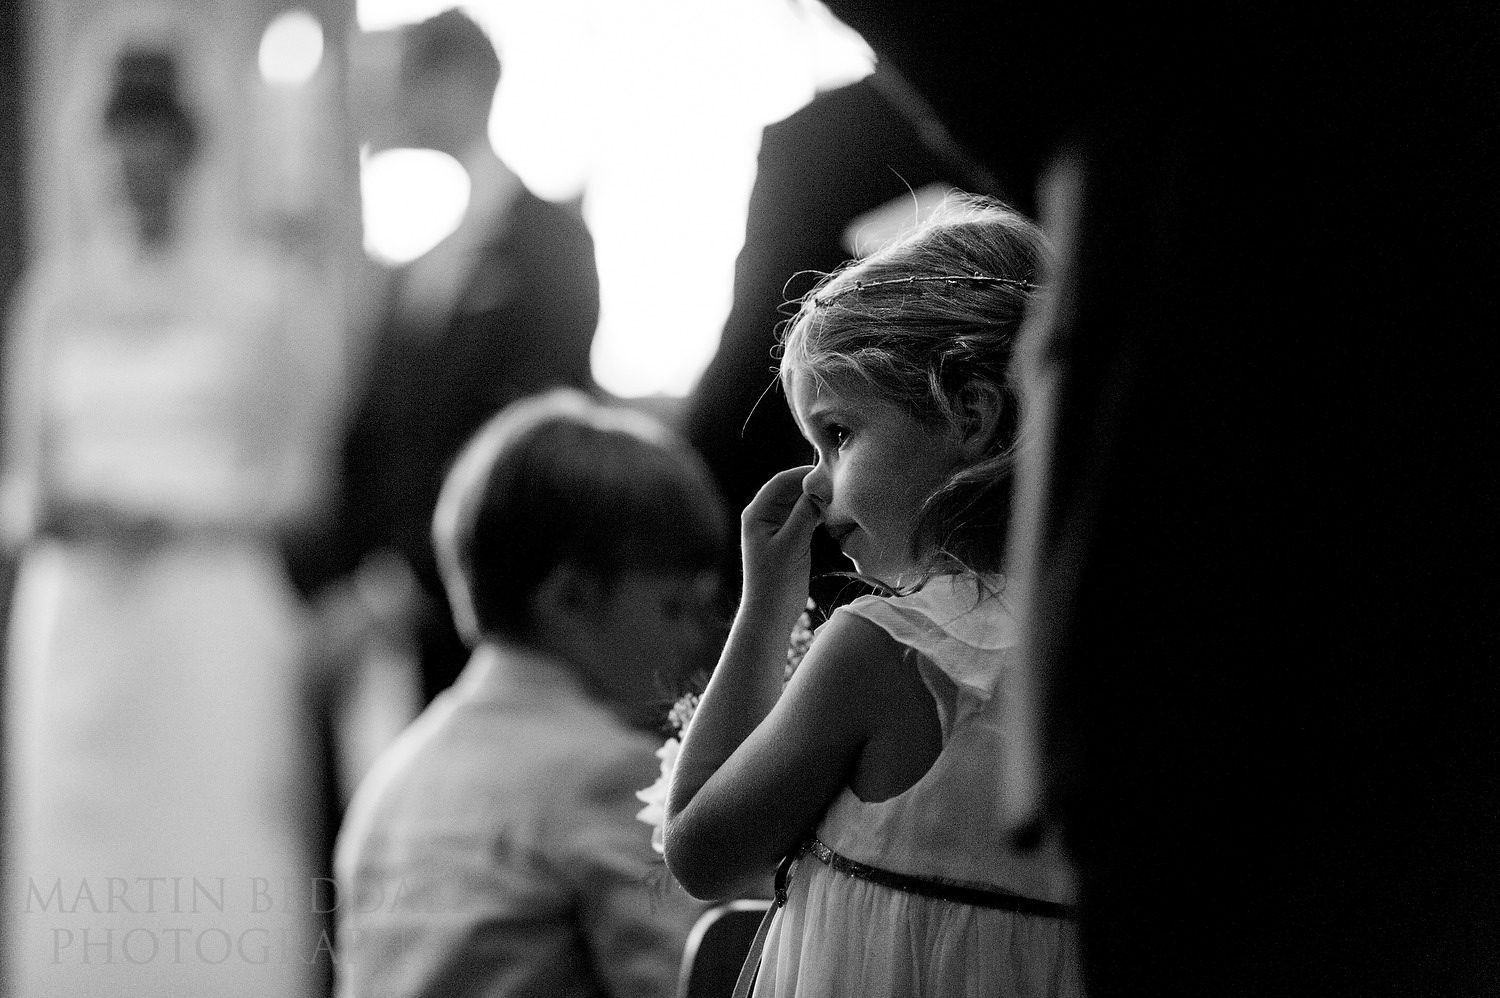 Nose picking during the ceremony